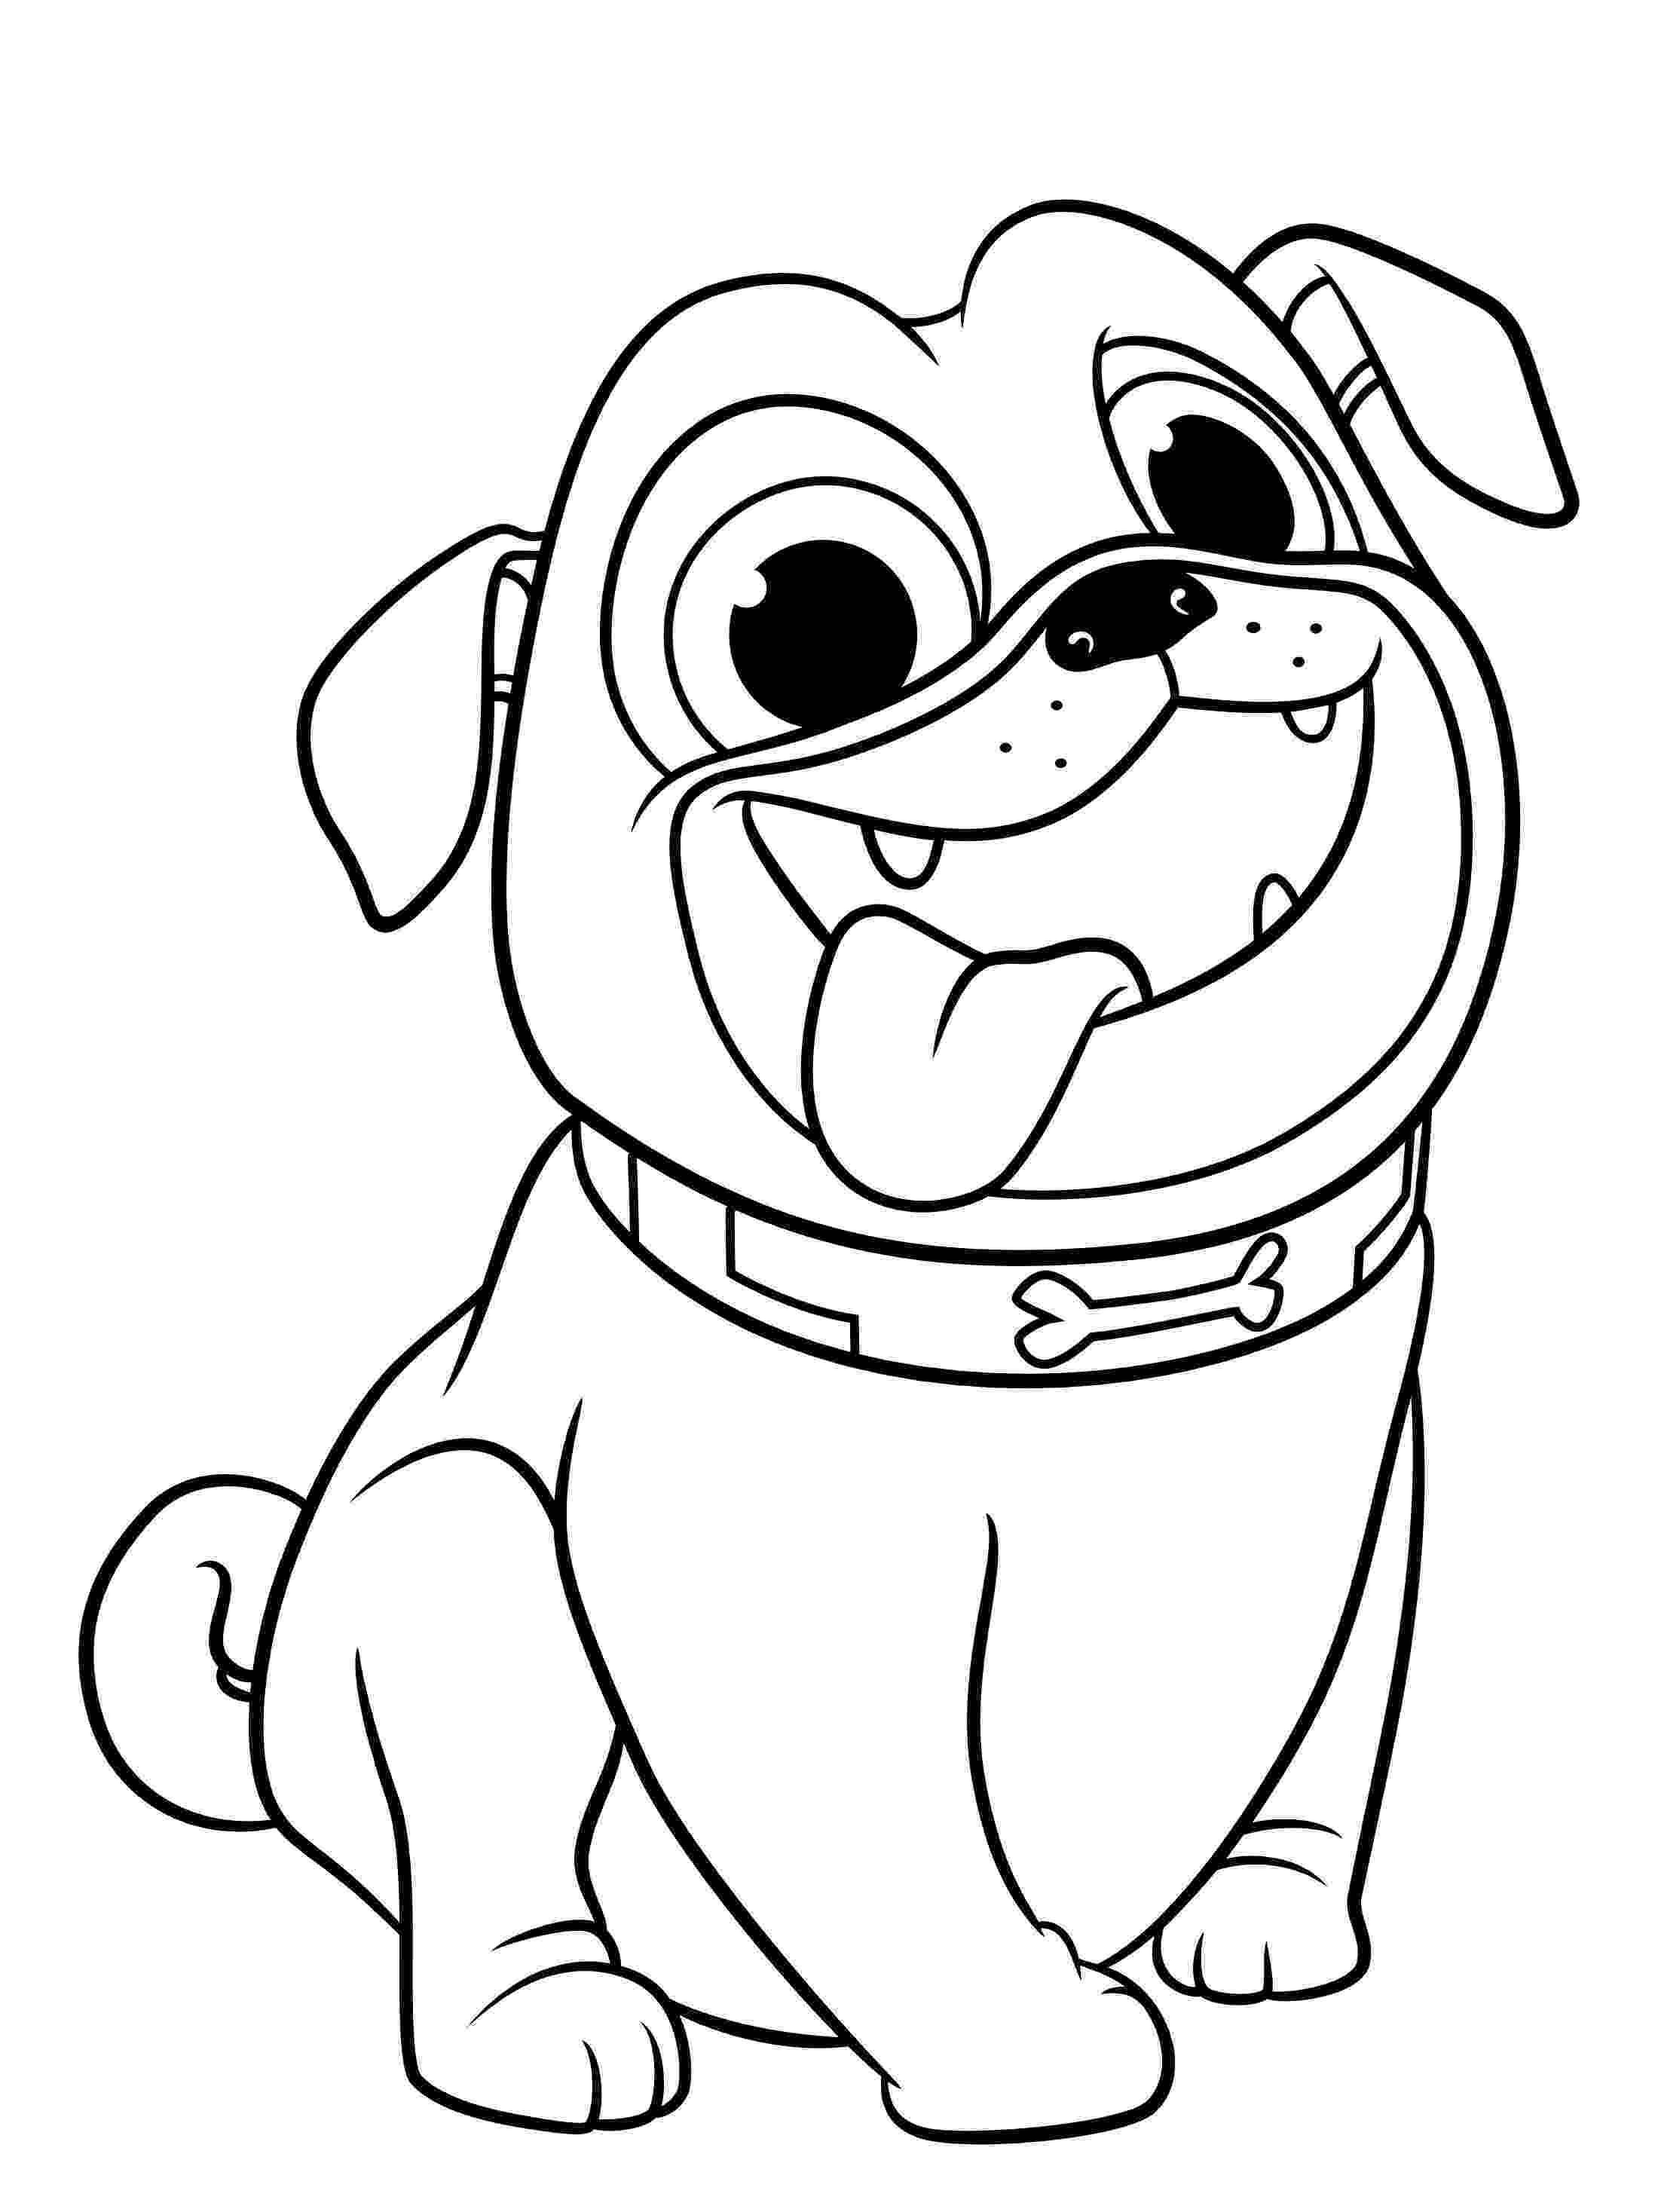 coloring sheets dogs free printable dog coloring pages for kids dogs sheets coloring 1 2